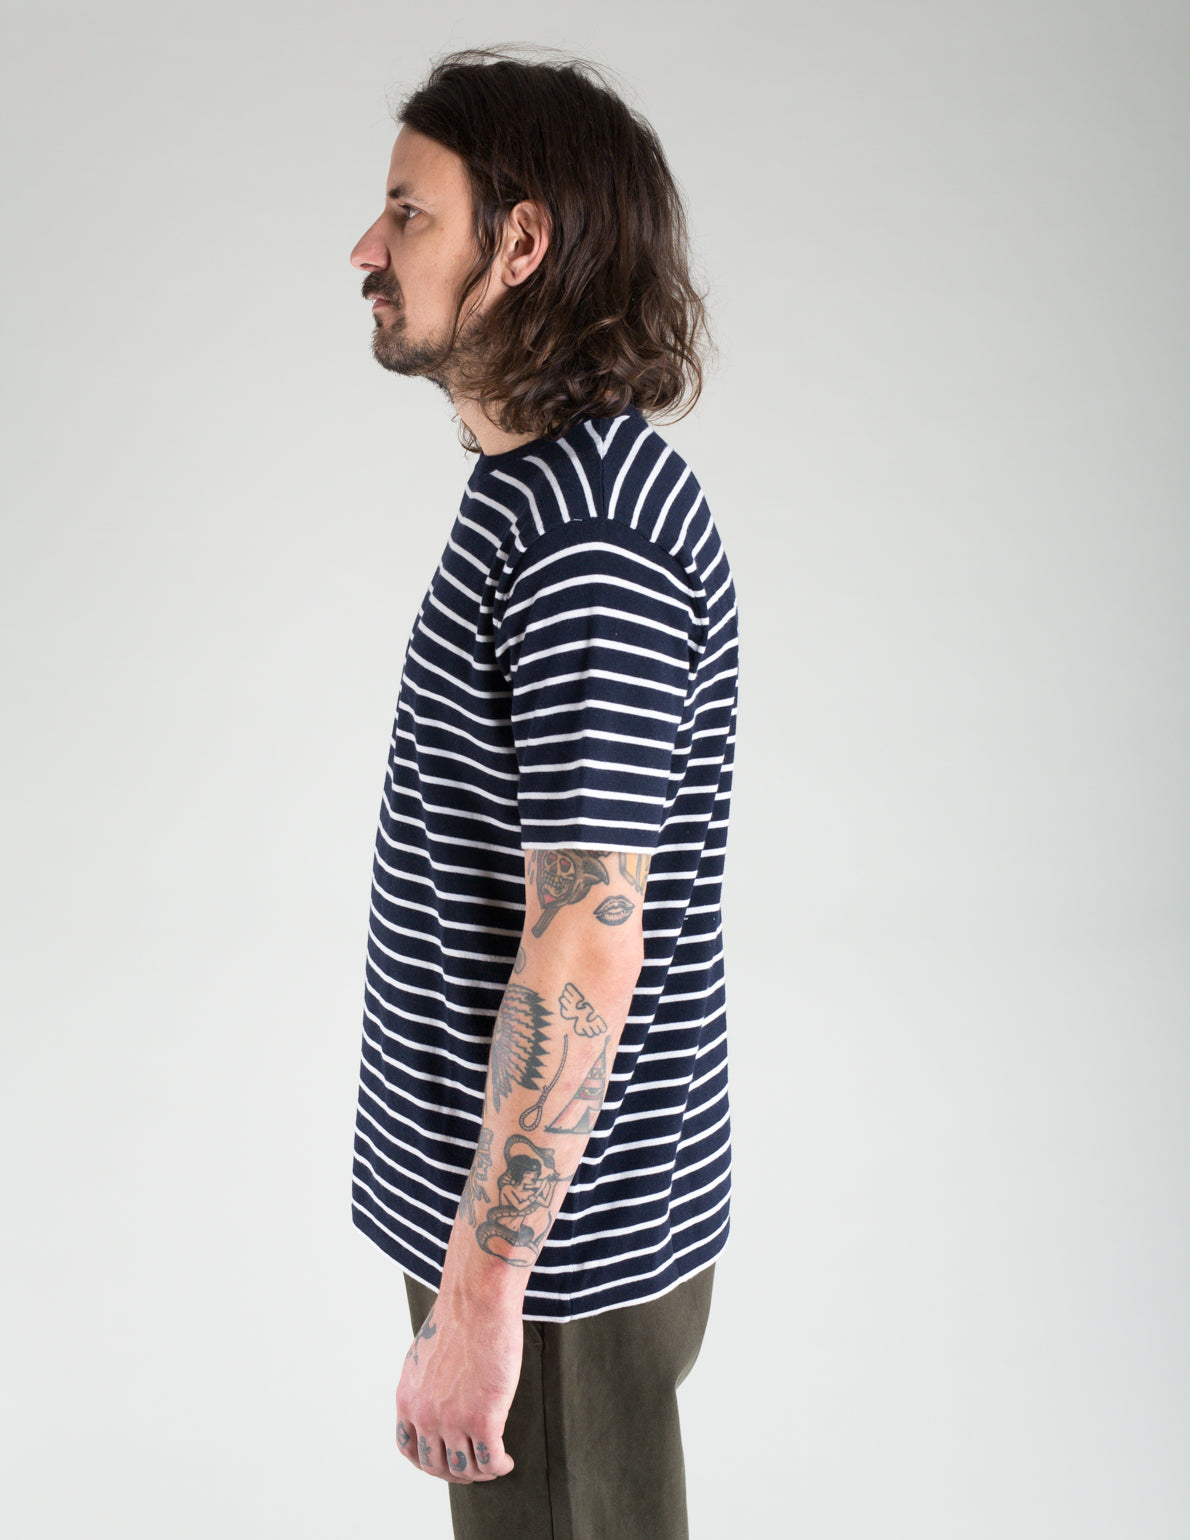 Native North Merino Striped Tee Navy